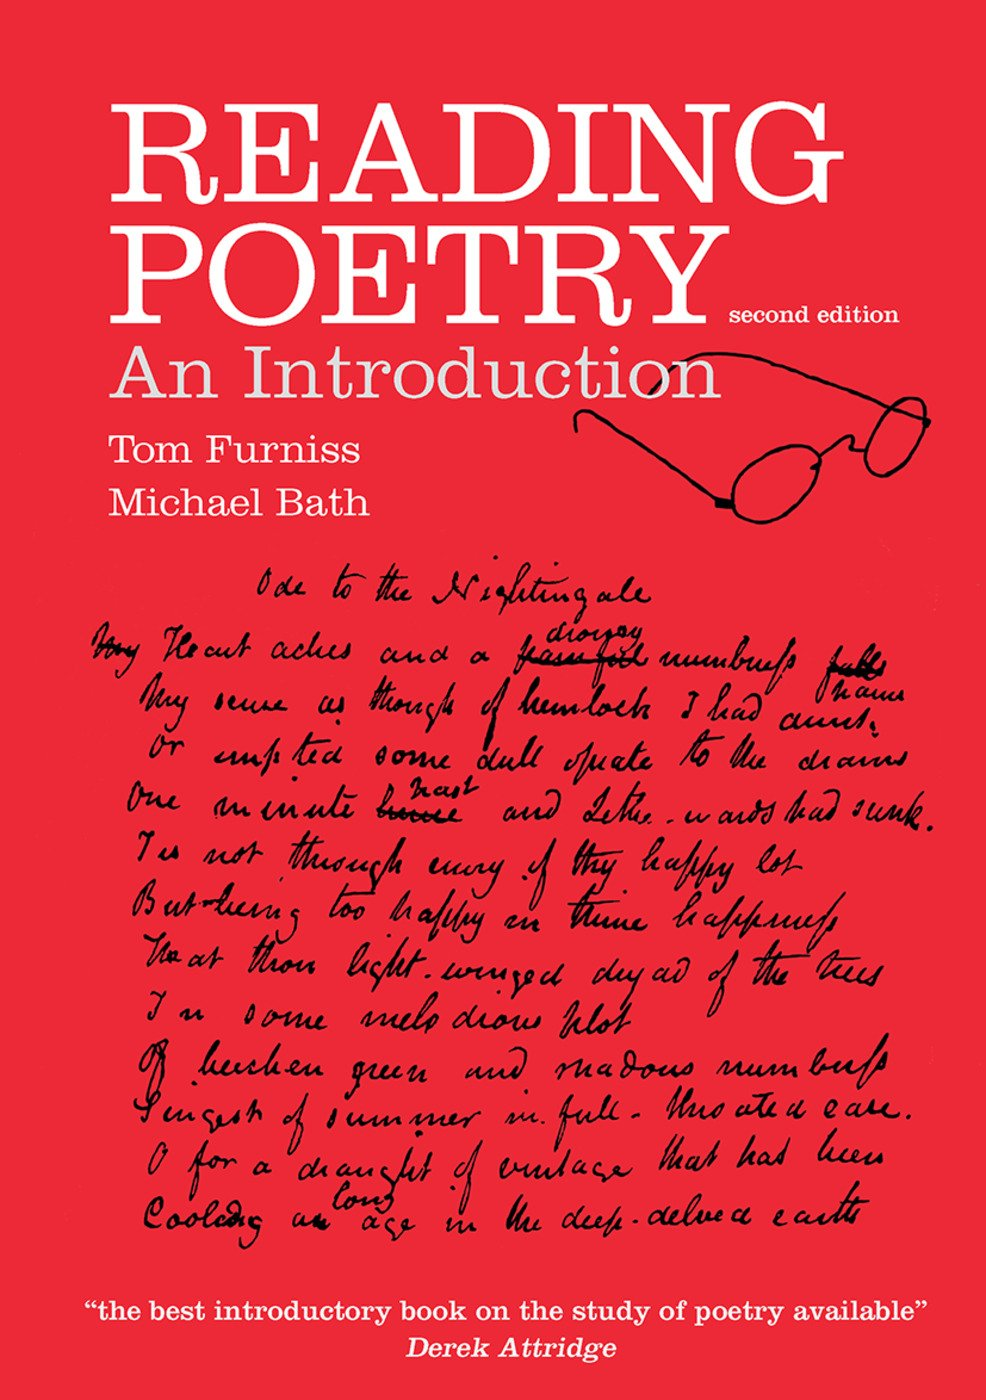 Reading Poetry | An Introduction | Taylor & Francis Group